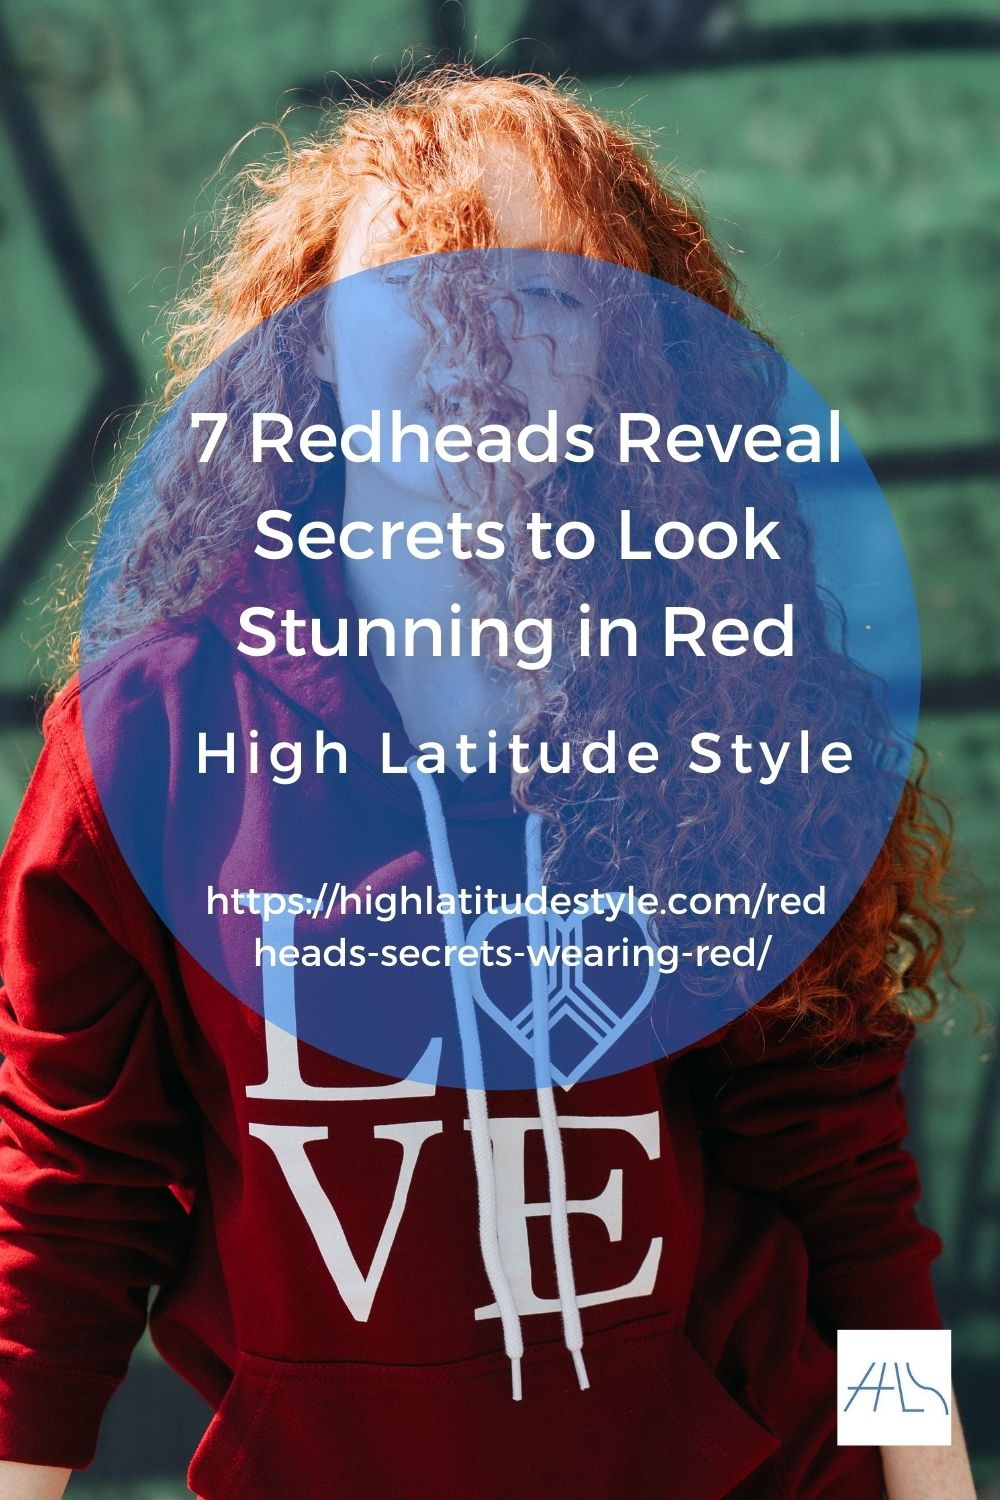 7 Redheads Reveal Secrets to Look Stunning in Red